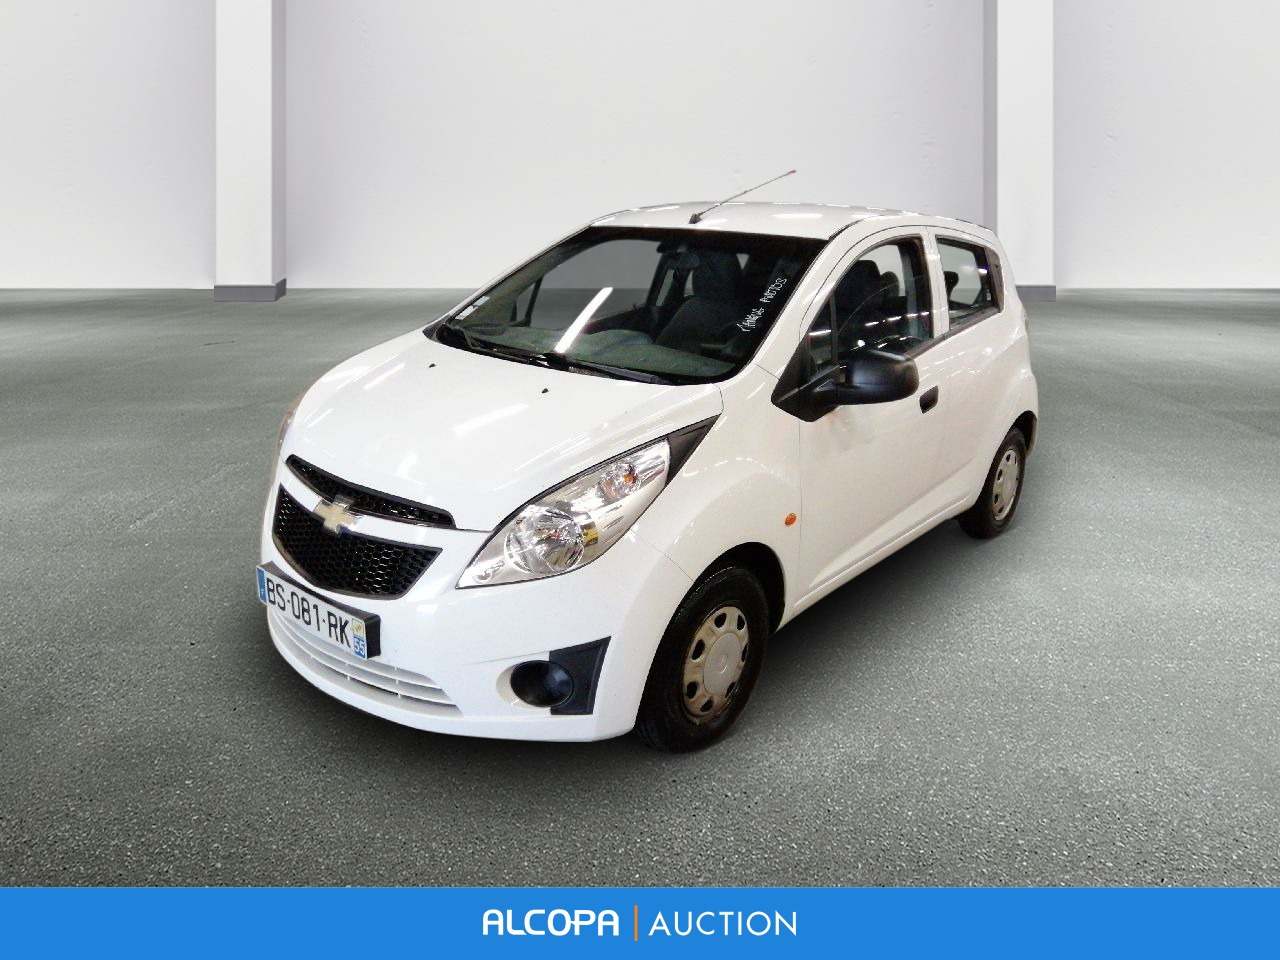 chevrolet spark - spark 1.0 16v - 68 ls - nancy | alcopa auction